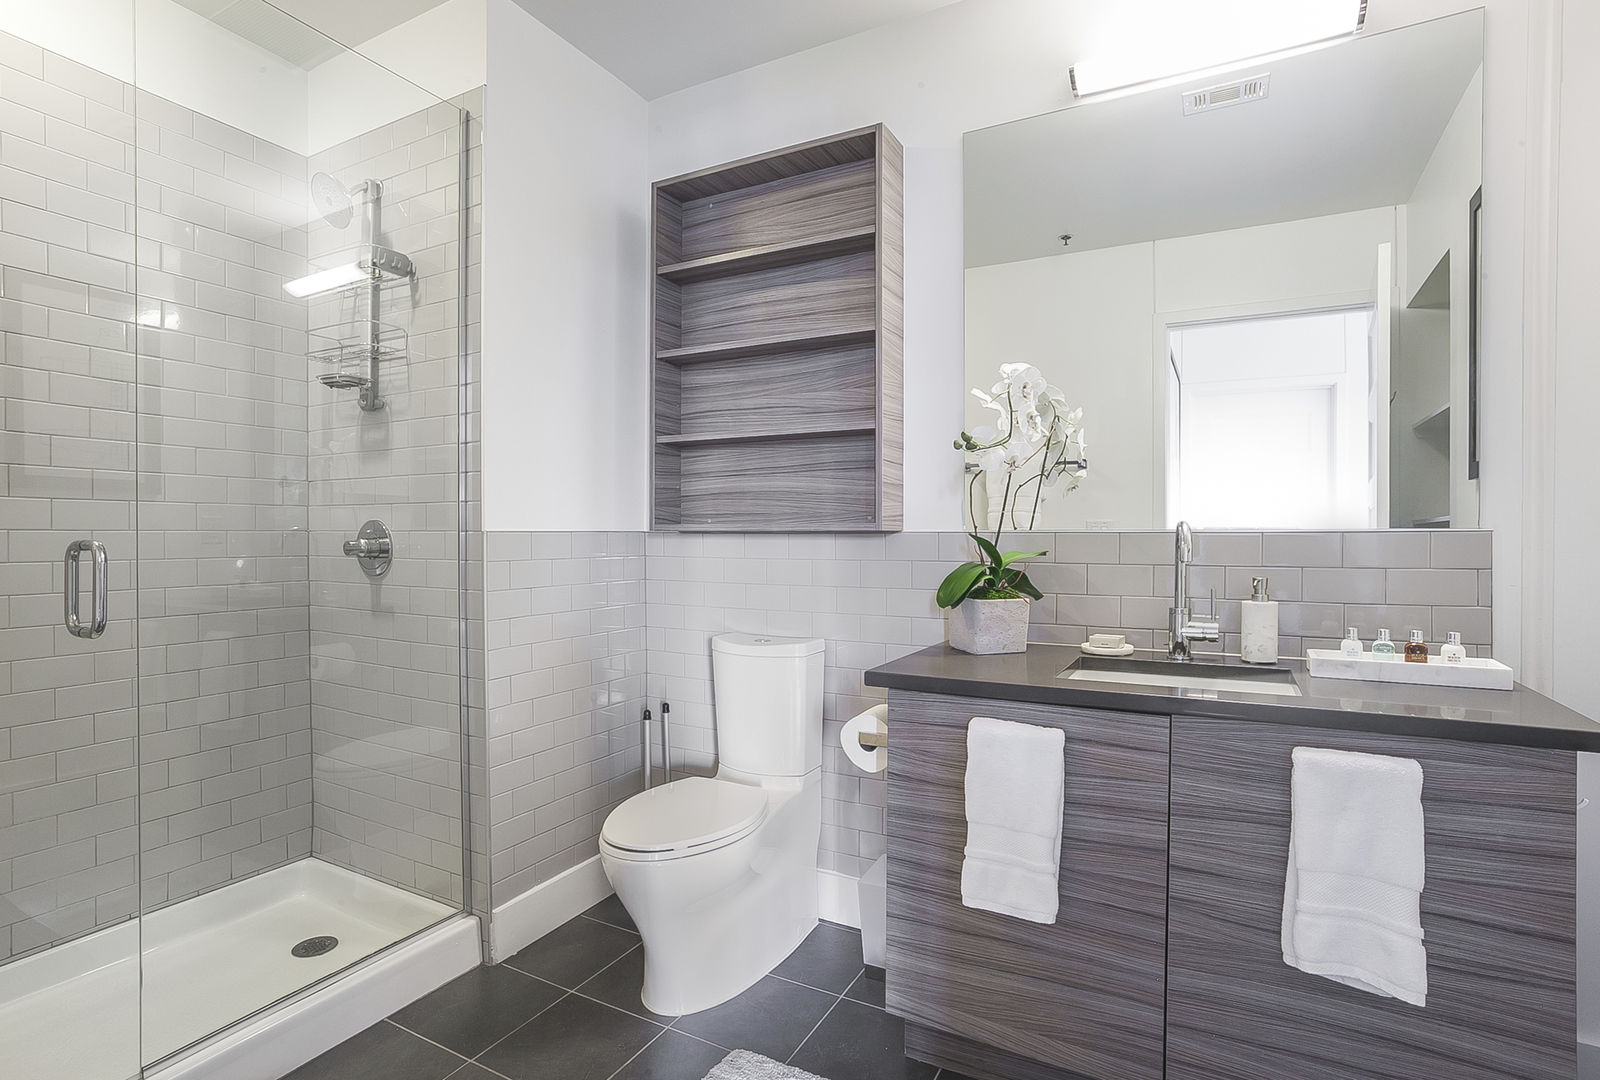 Bathroom of this Ponce Market Apartment, with vanity sink and toilet beside a walk-in shower.